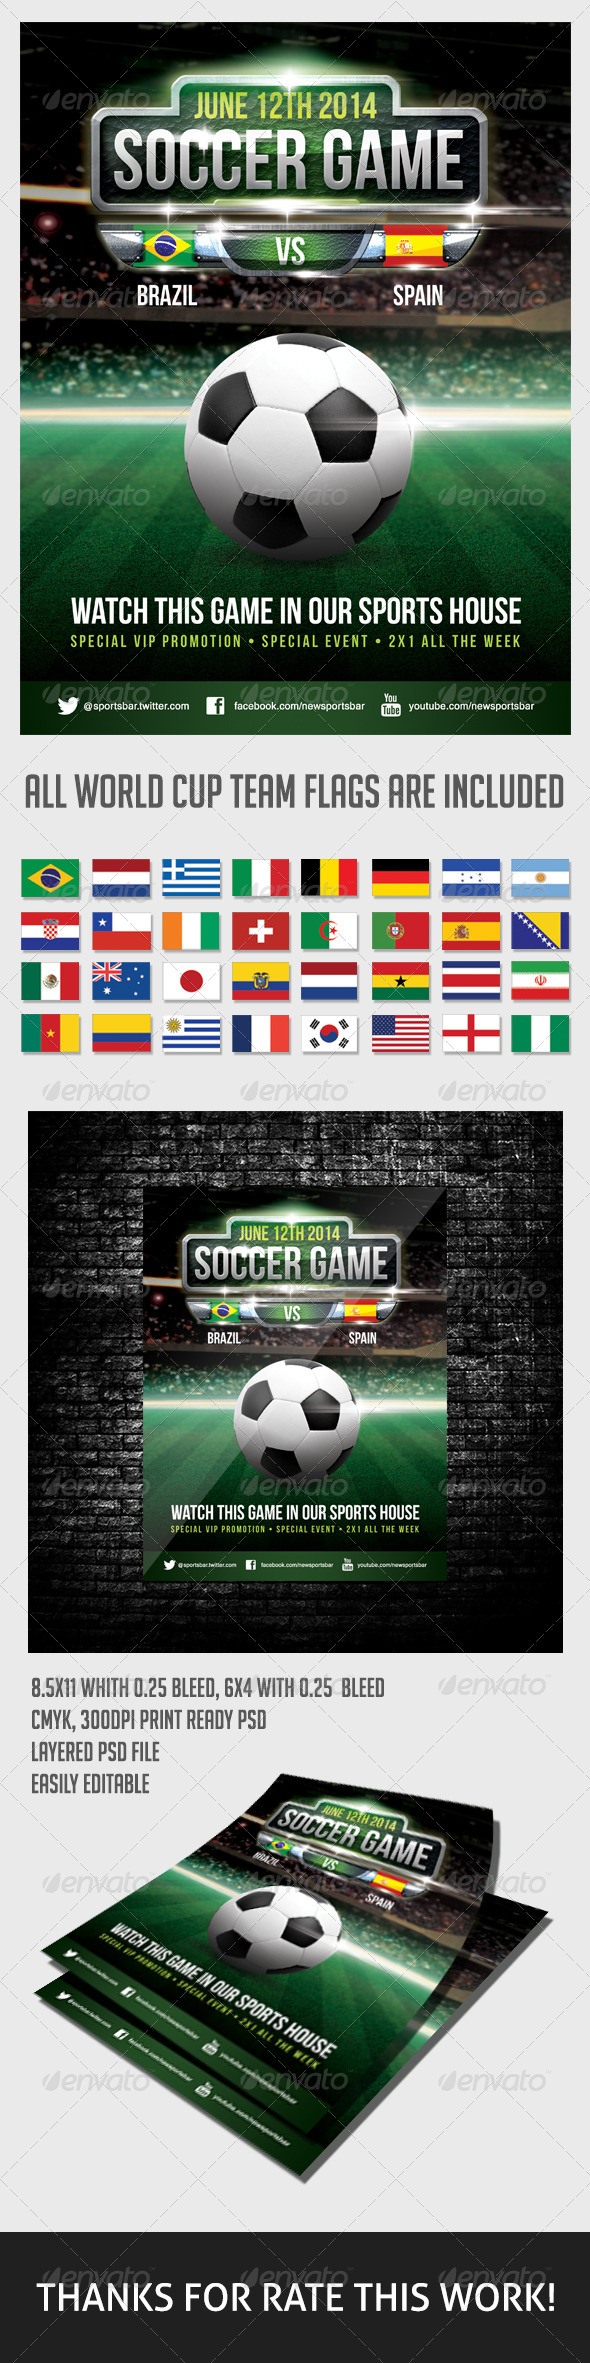 GraphicRiver Soccer Game Poster 6752407